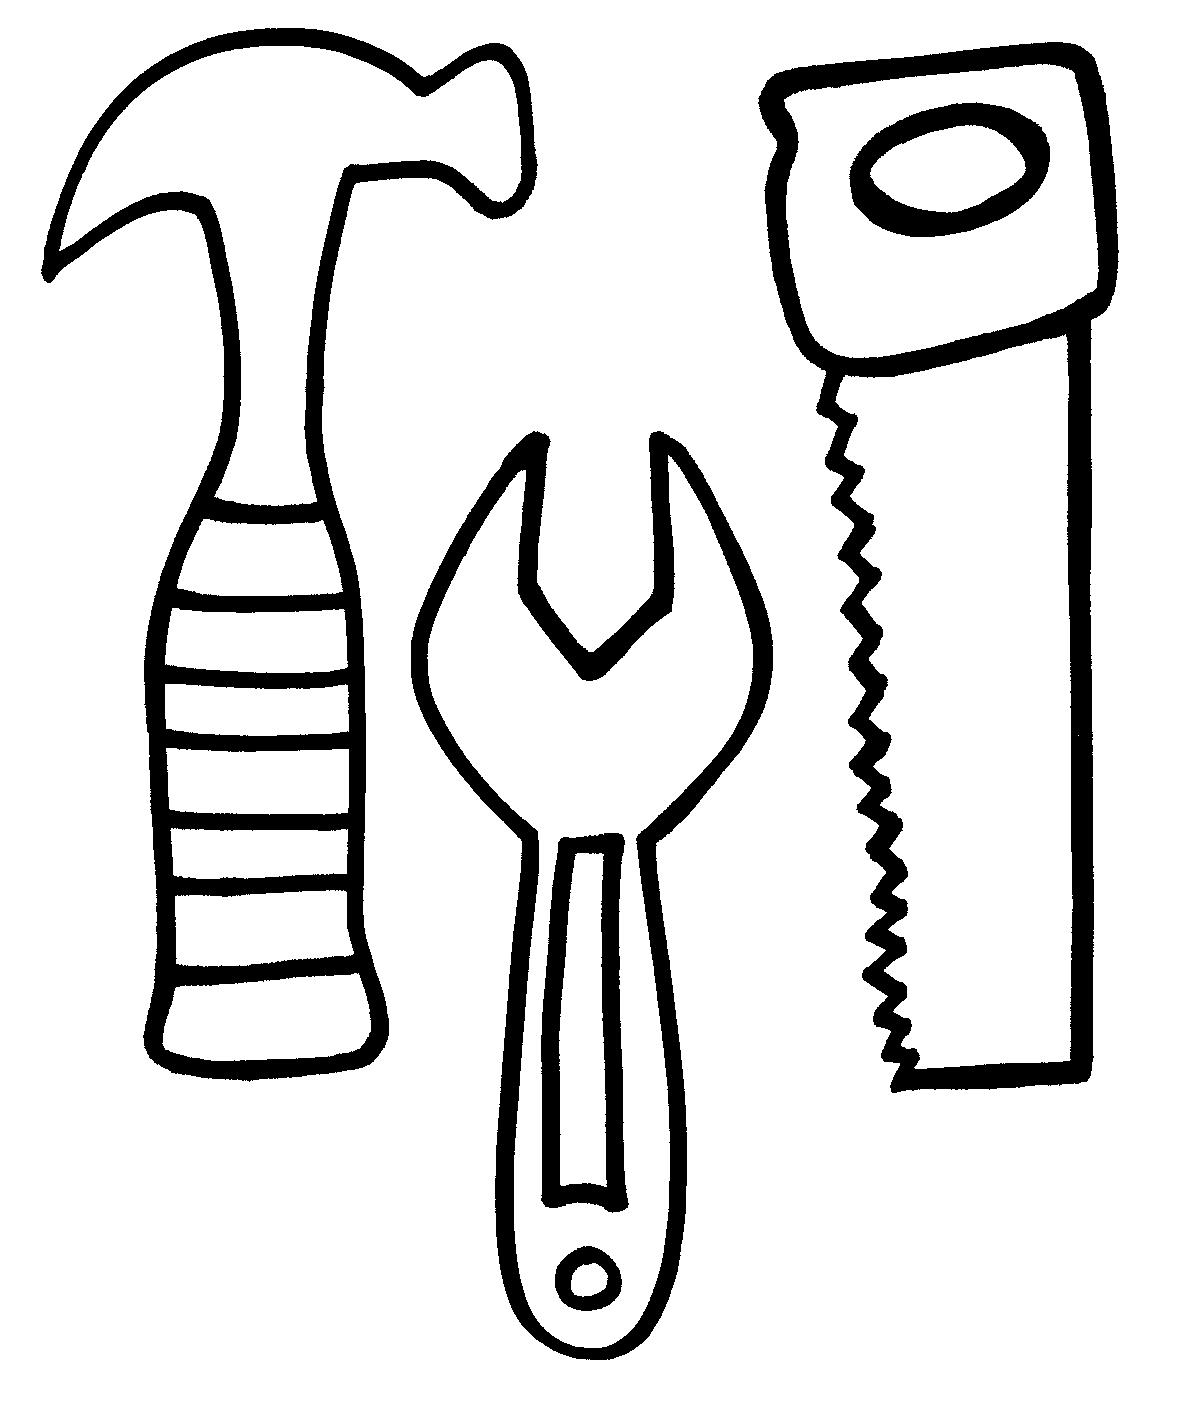 Utensils clipart colouring page. Doctor tools drawing at